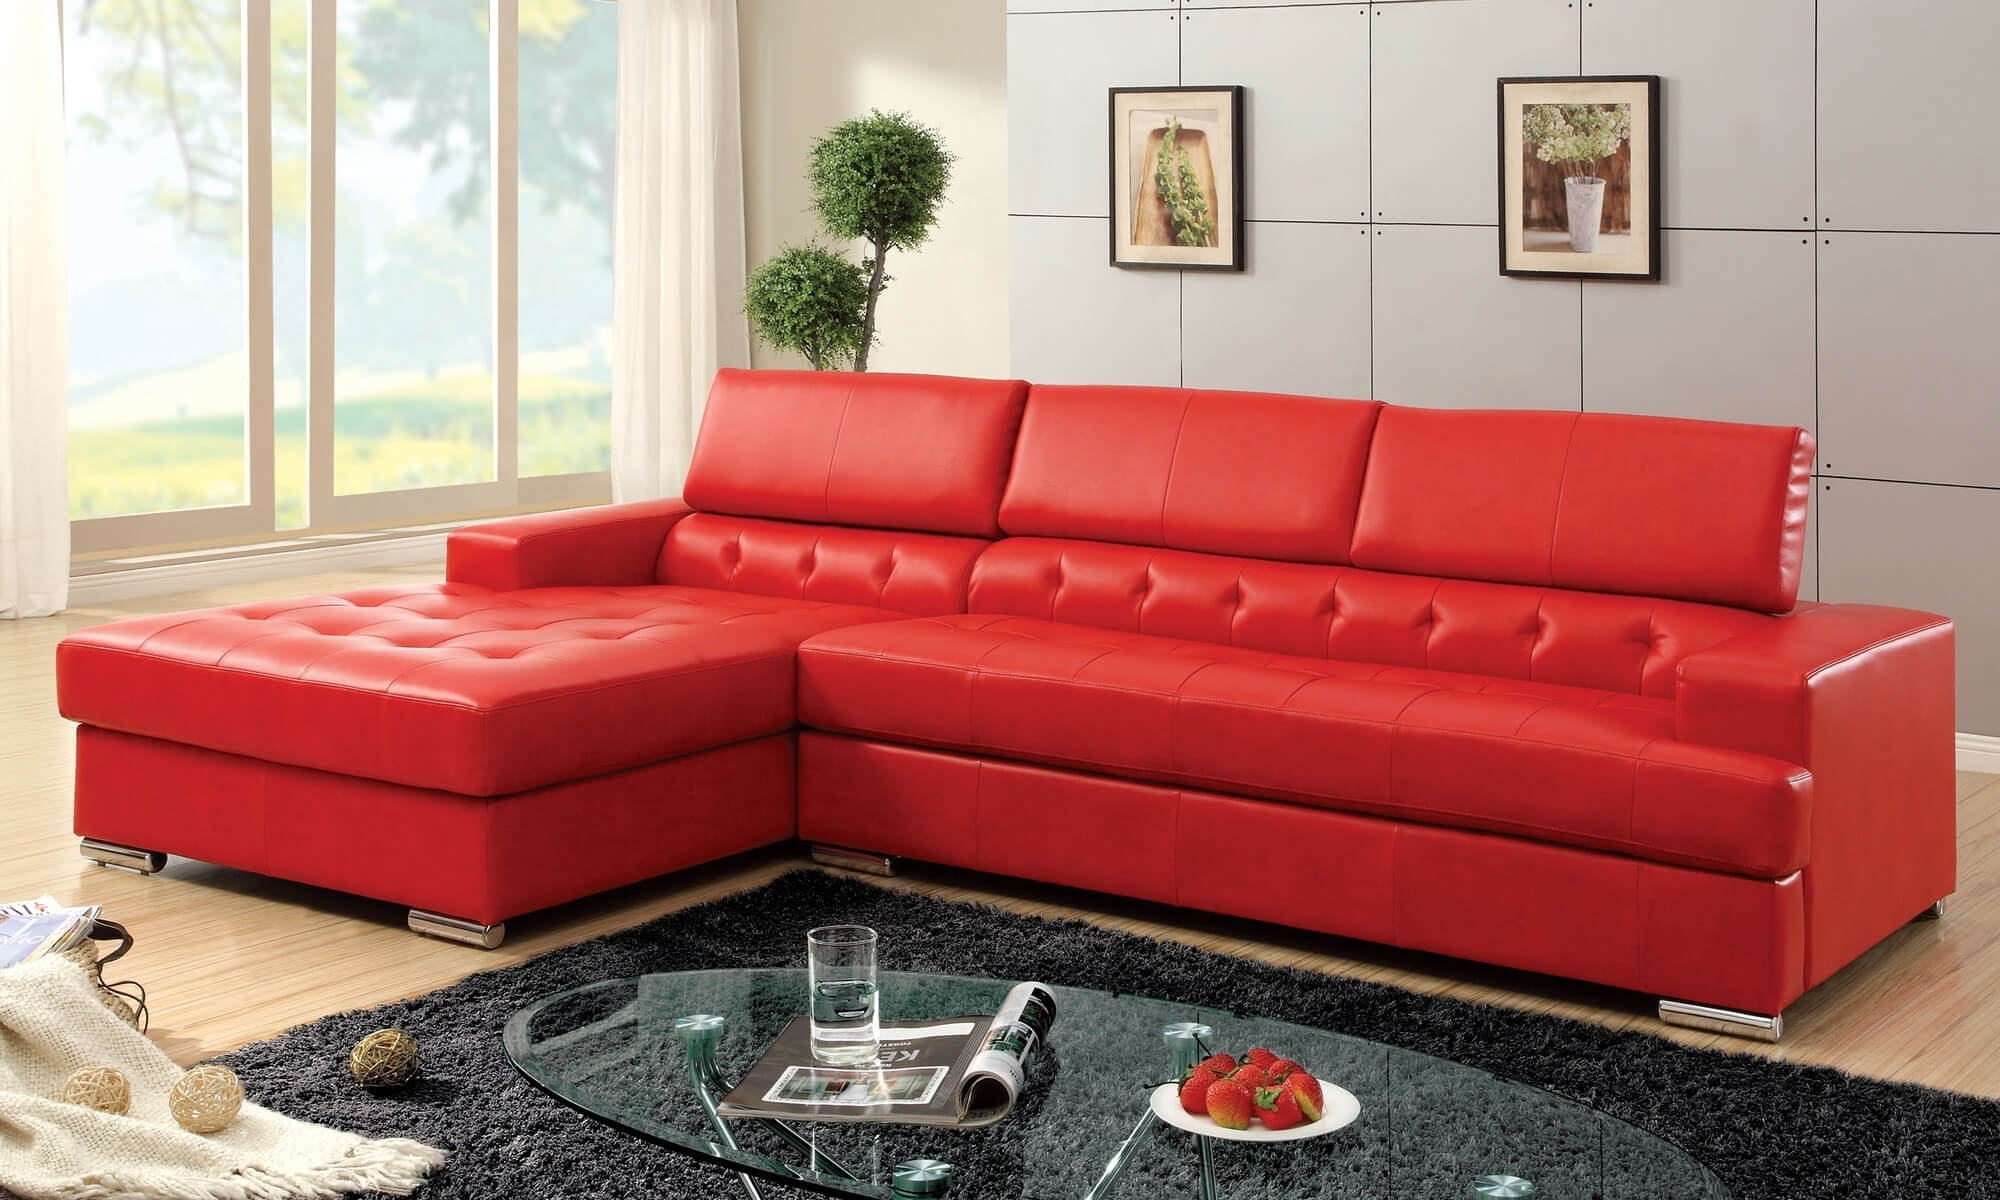 New Red Leather Sectional Sofa With Chaise – Best Sectional Sofa Ideas For Red Leather Sectionals With Chaise (View 2 of 10)